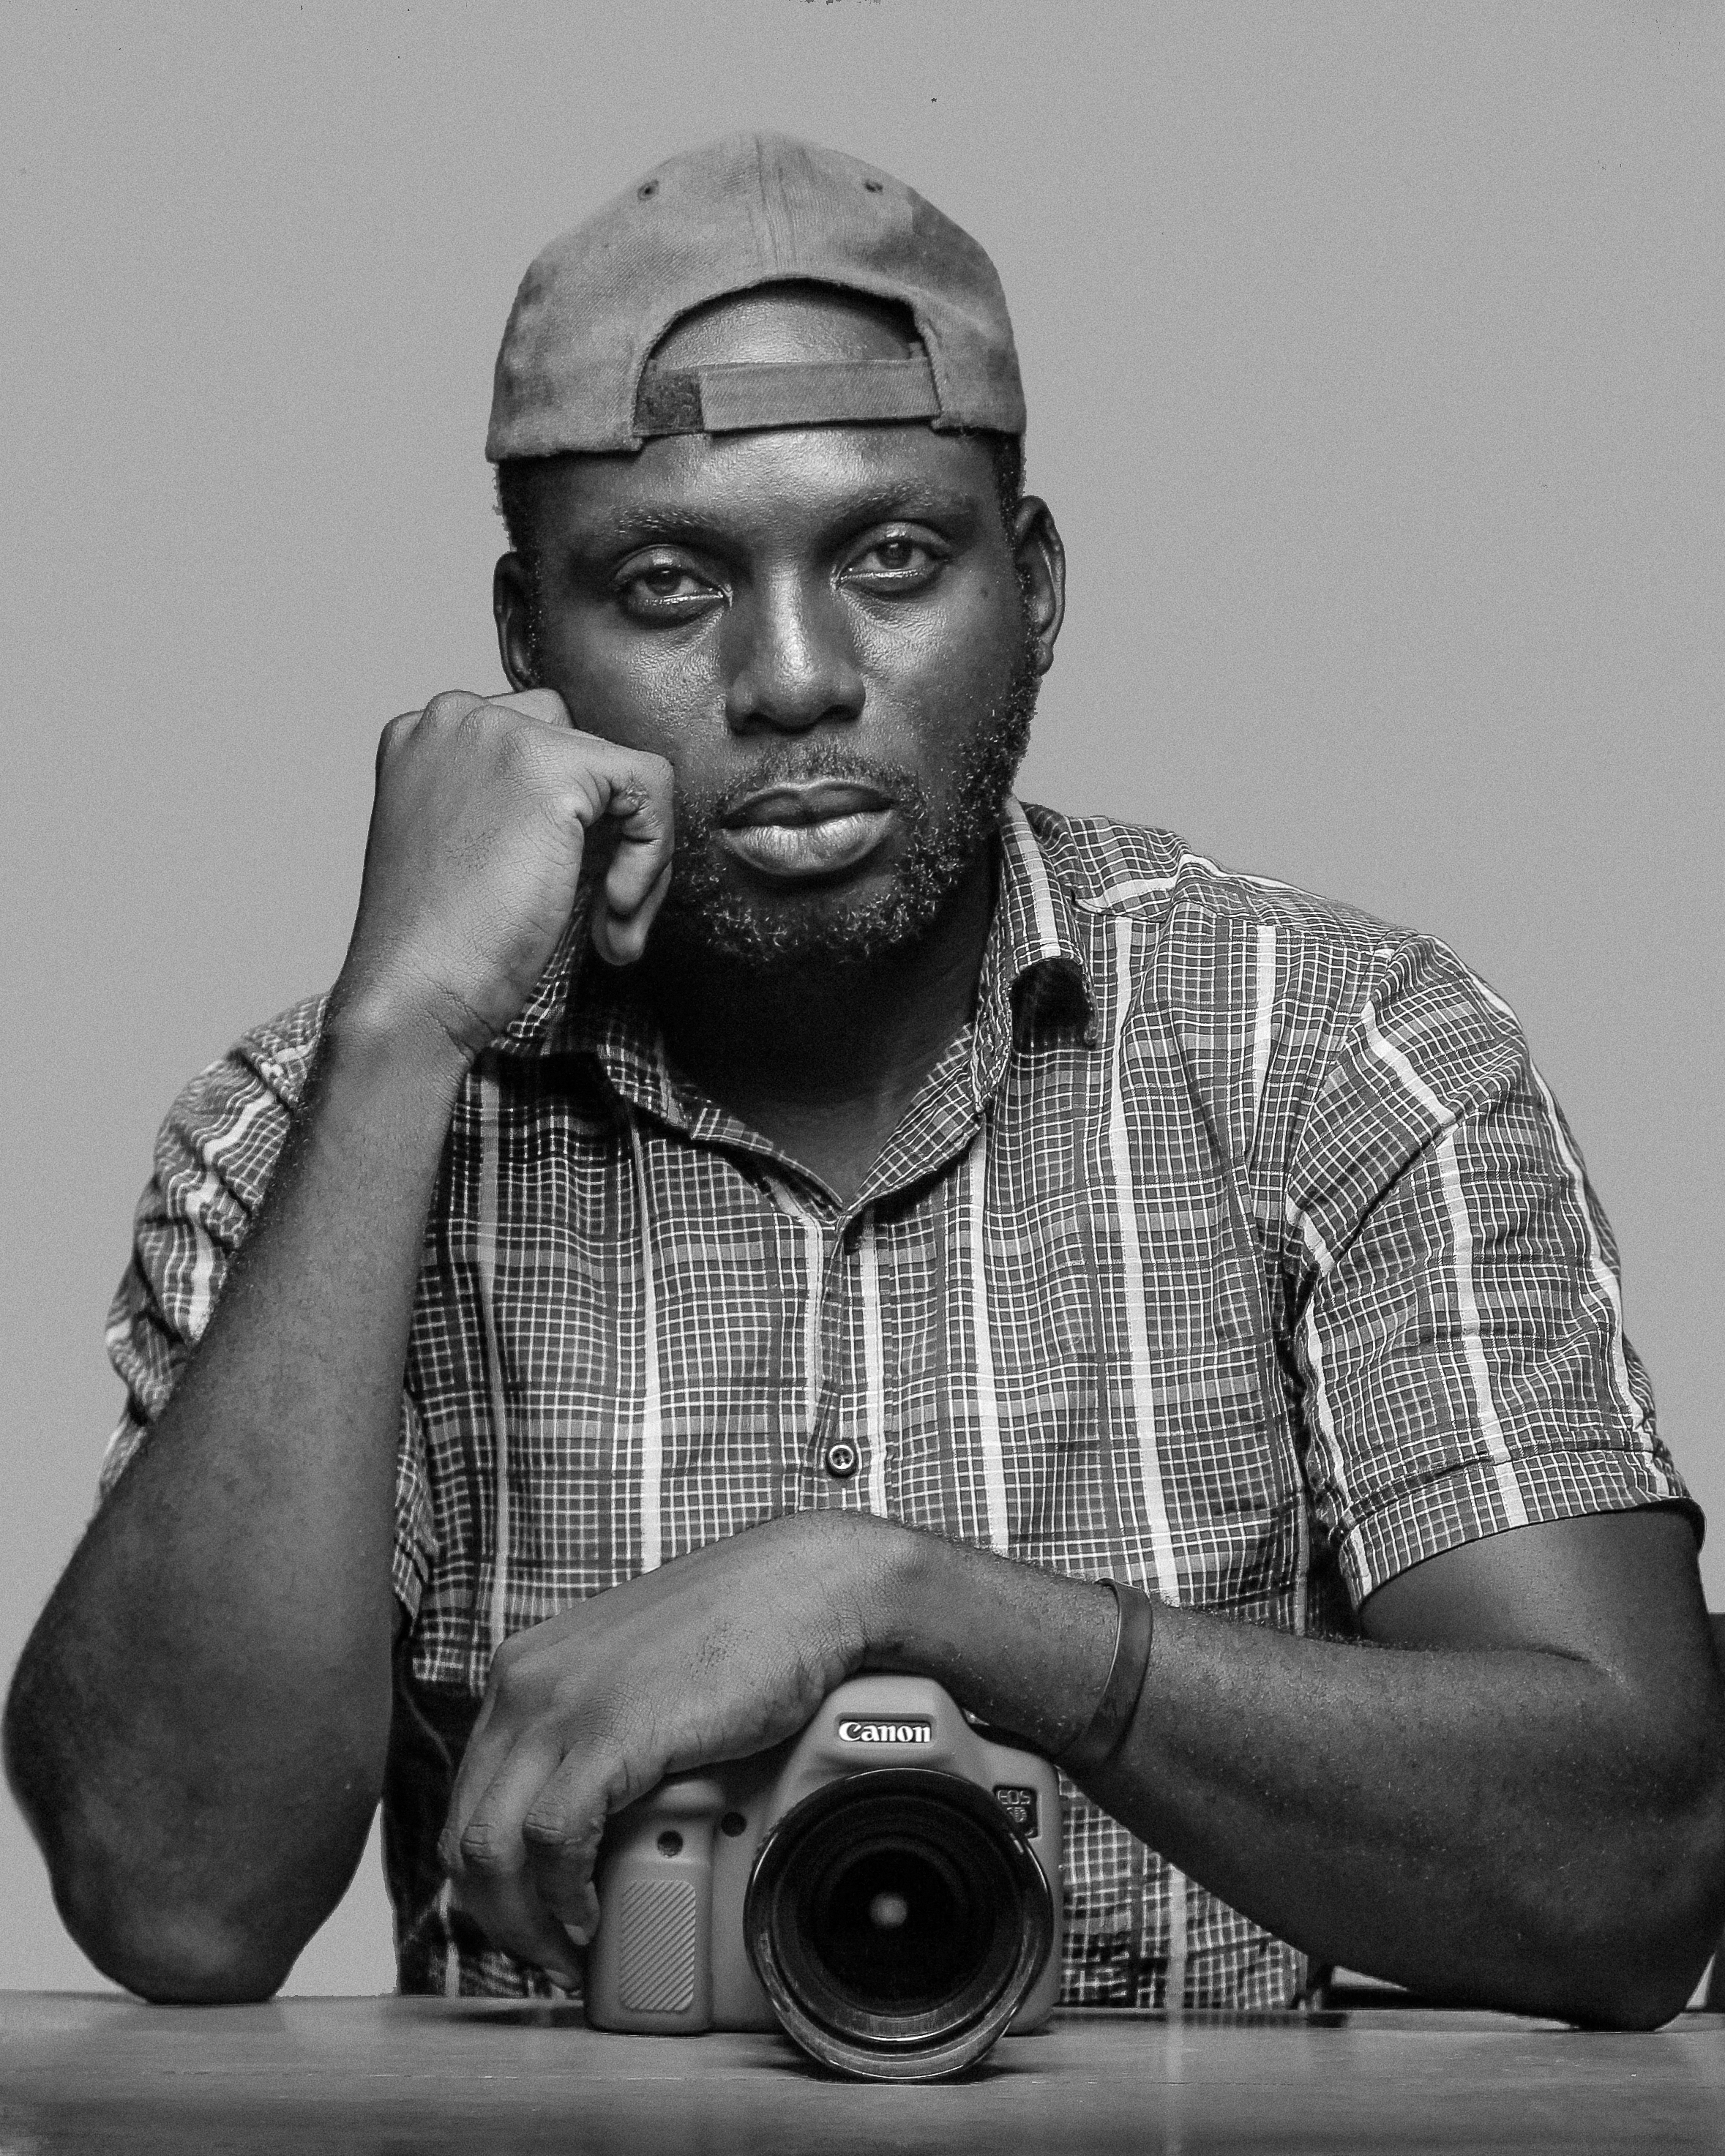 Gerard Nartey - Gerard Nartey (1988, Ghana) holds a Bachelor Degree in Communications from the African University College of Communication with a major in Visual Communications. He has been photographing for 11 years, and has a strong interest in the lives and culture of people from different geographic regions and their landscapes as well as how their landscapes influence their livelihood and lifestyle. Gerard is also affiliated with Nuku Studio.